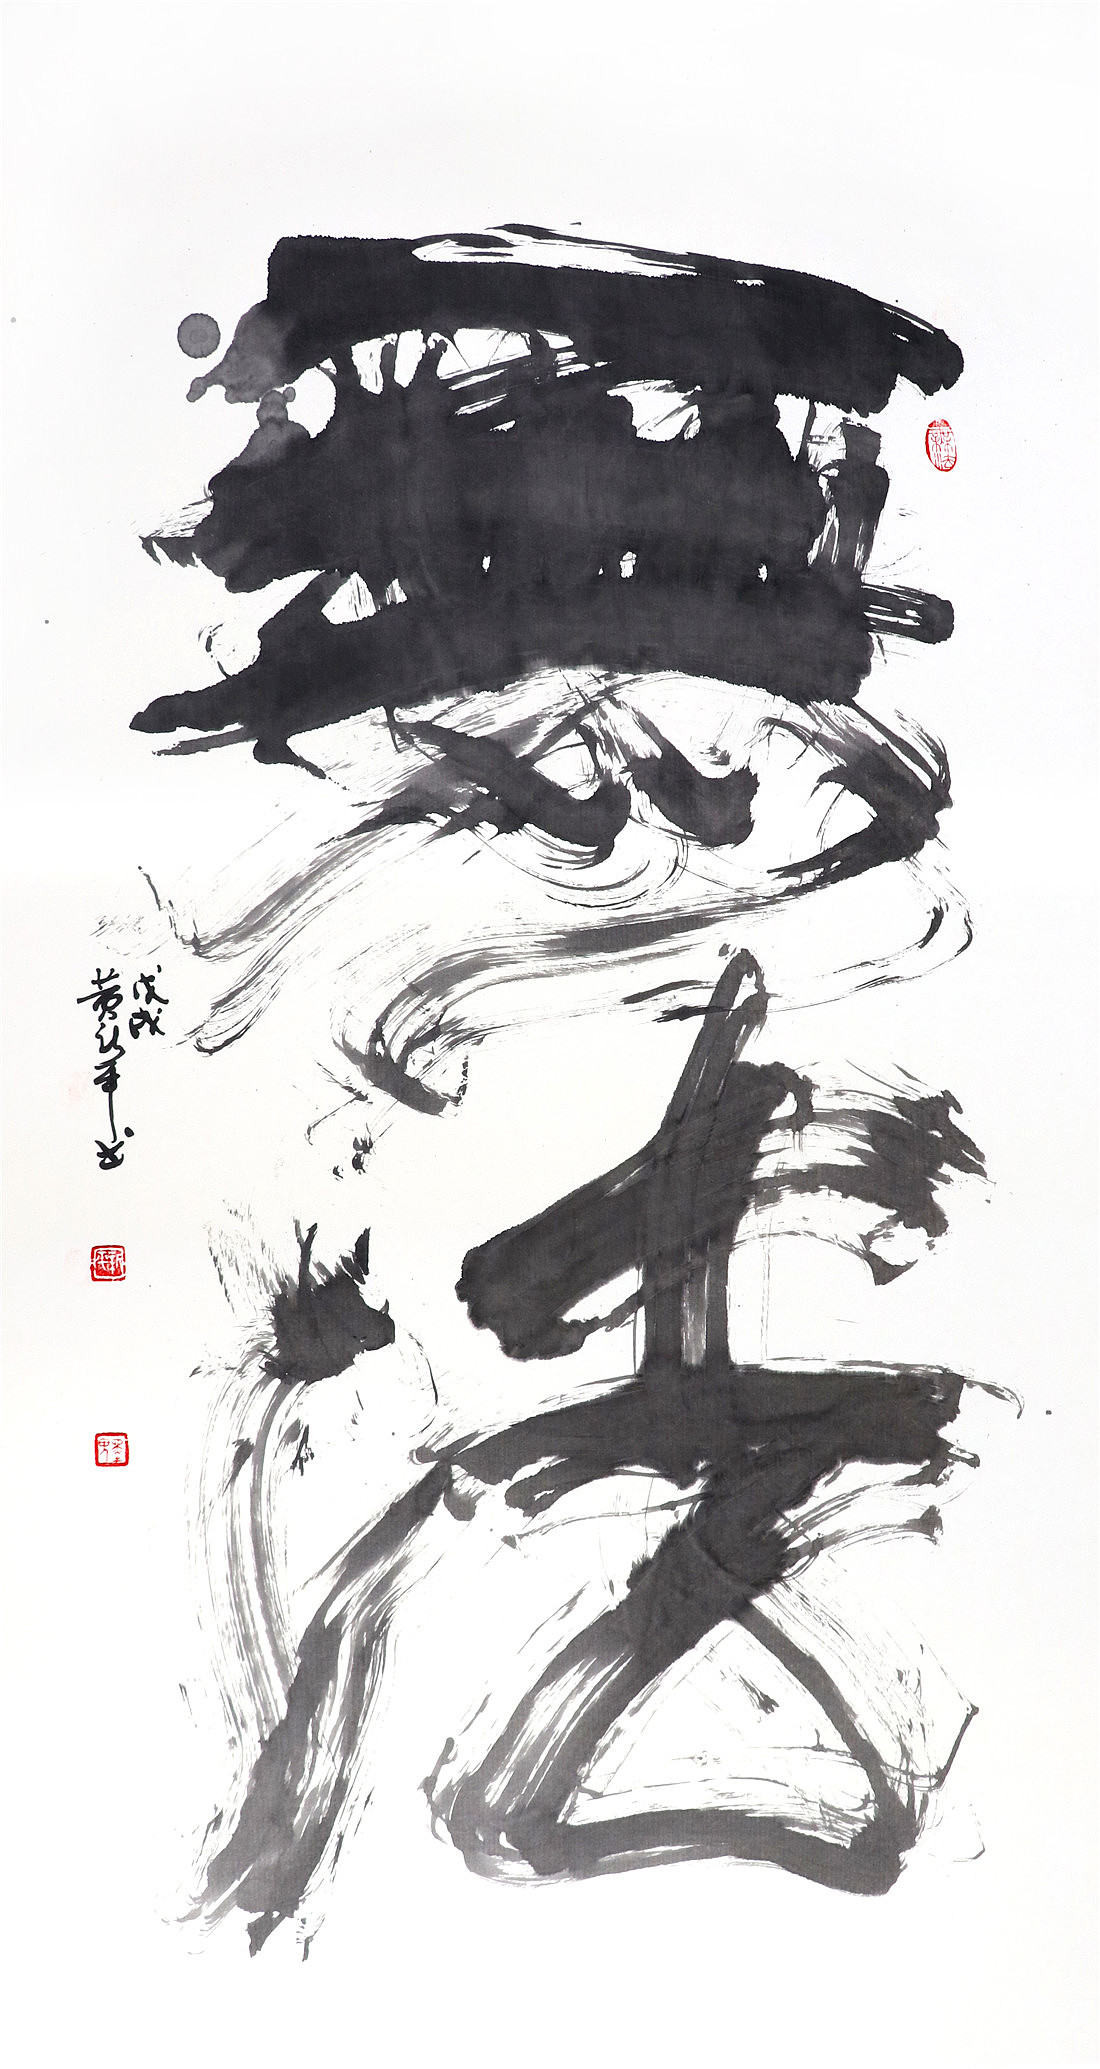 66P Chinese calligraphy font - Study on ink font